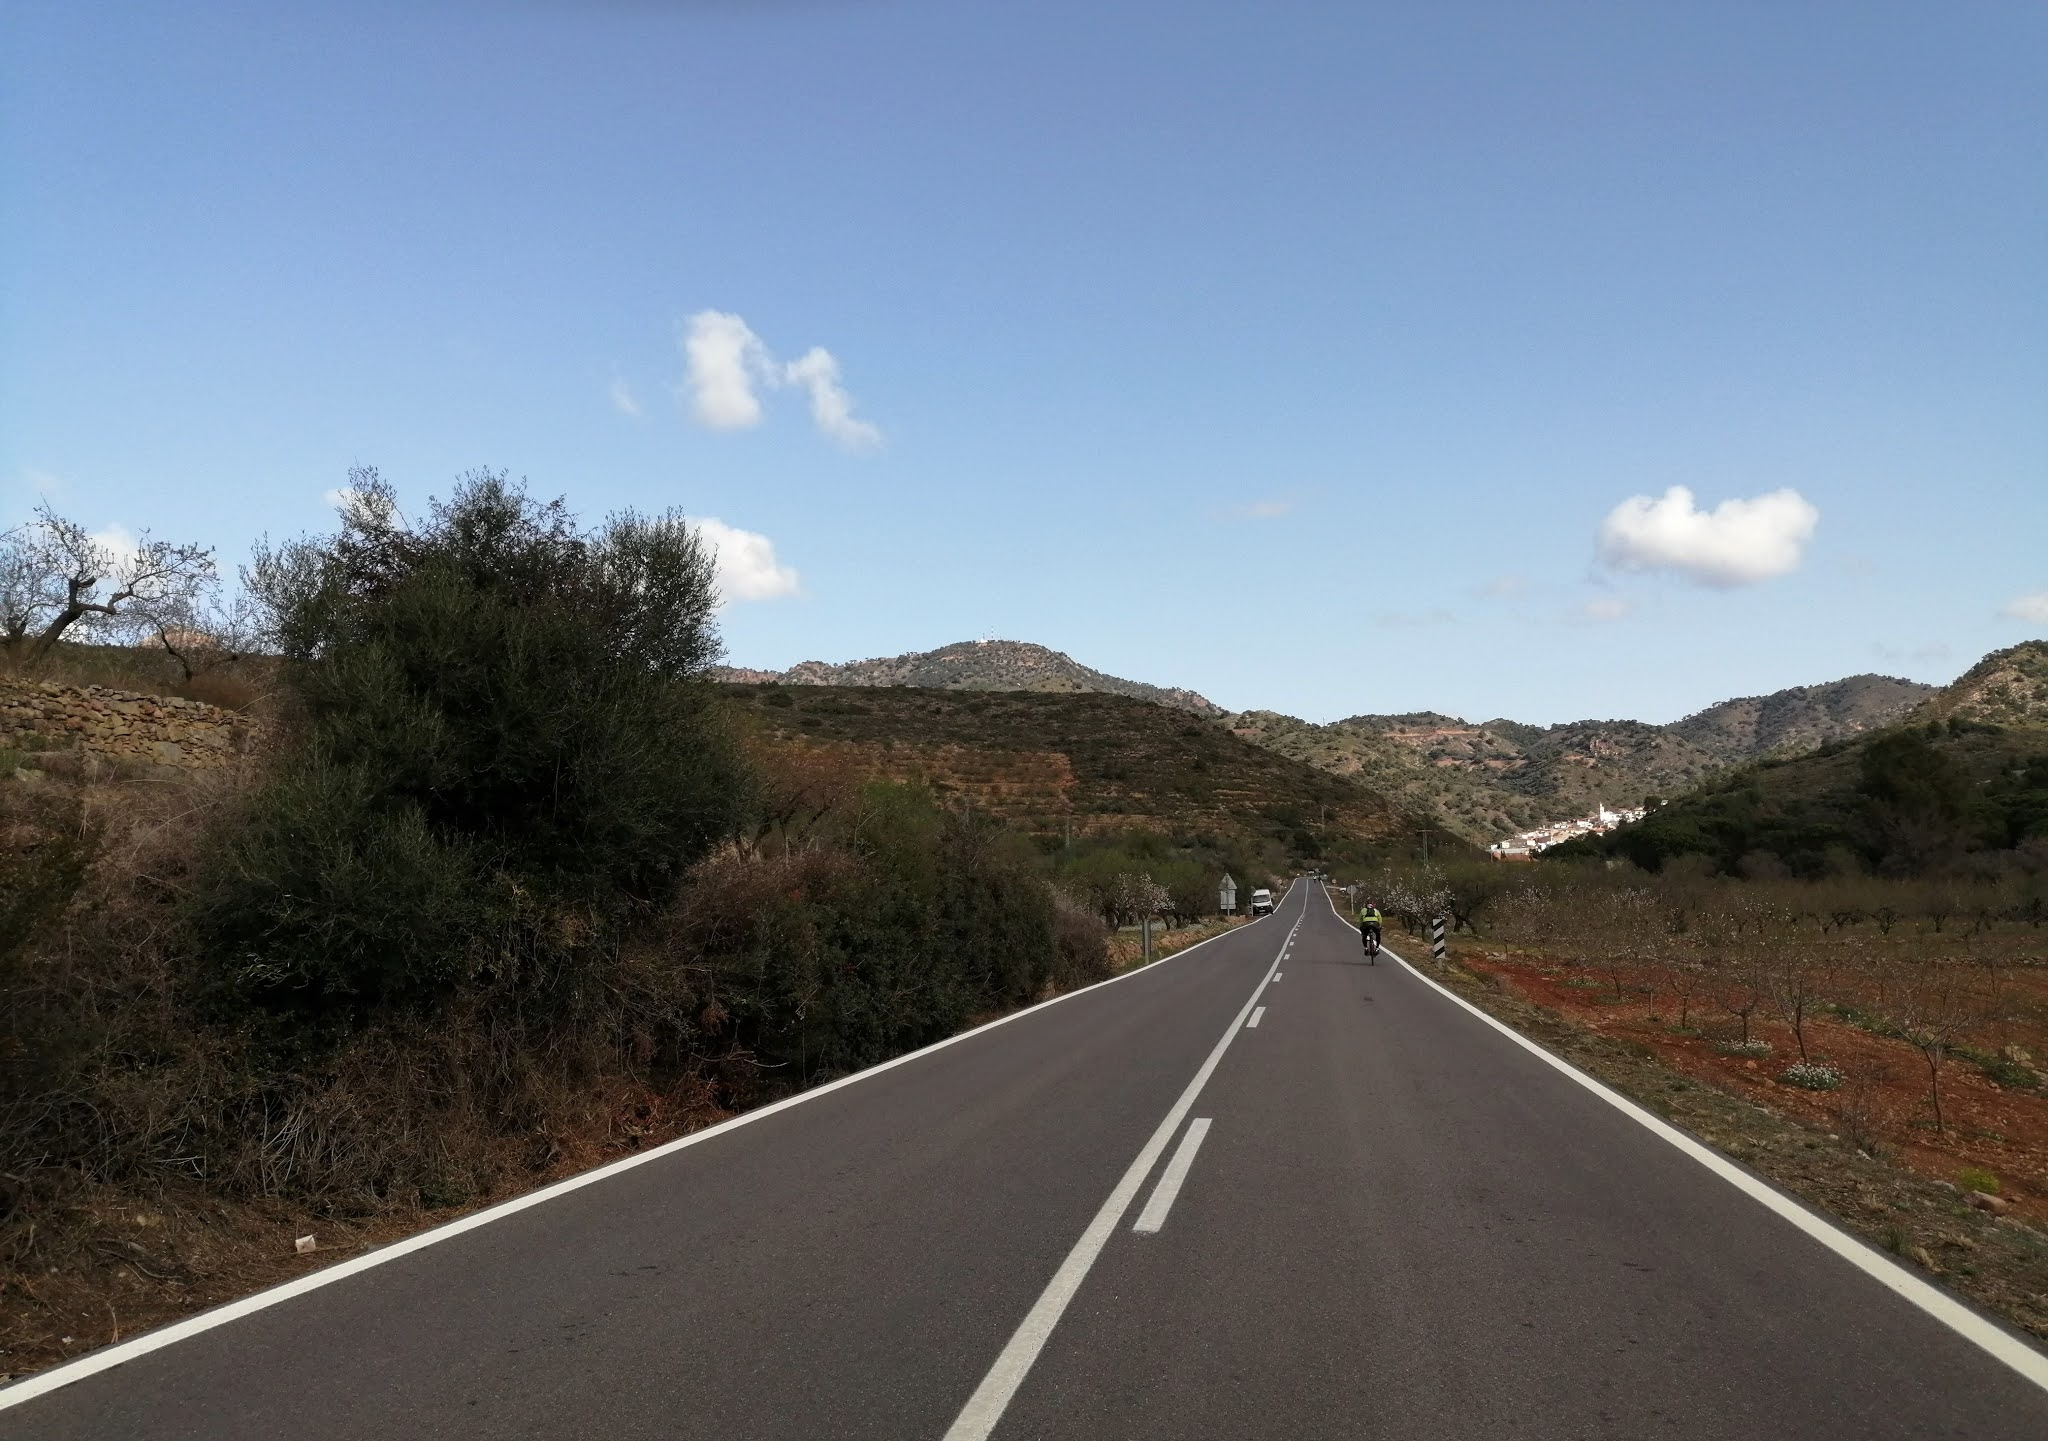 Cyclist approaching the village of Chóvar, Castellón, Spain